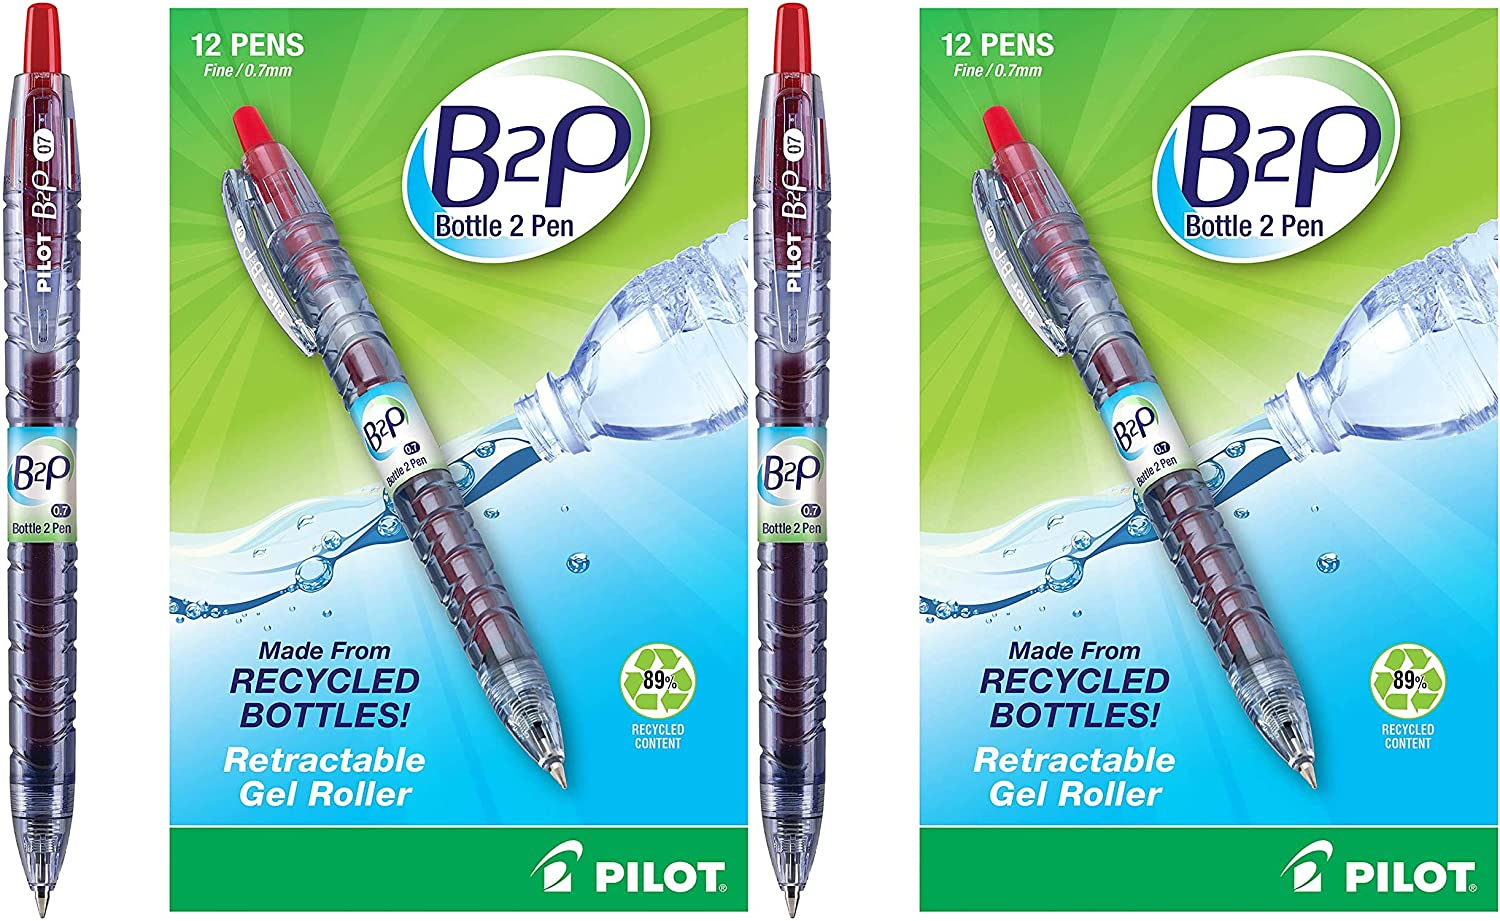 Fine Point 31602 2 Pack Bottle to Pen Refillable /& Retractable Rolling Ball Gel Pen Made From Recycled Bottles Red G2 Ink PILOT B2P 12 Count